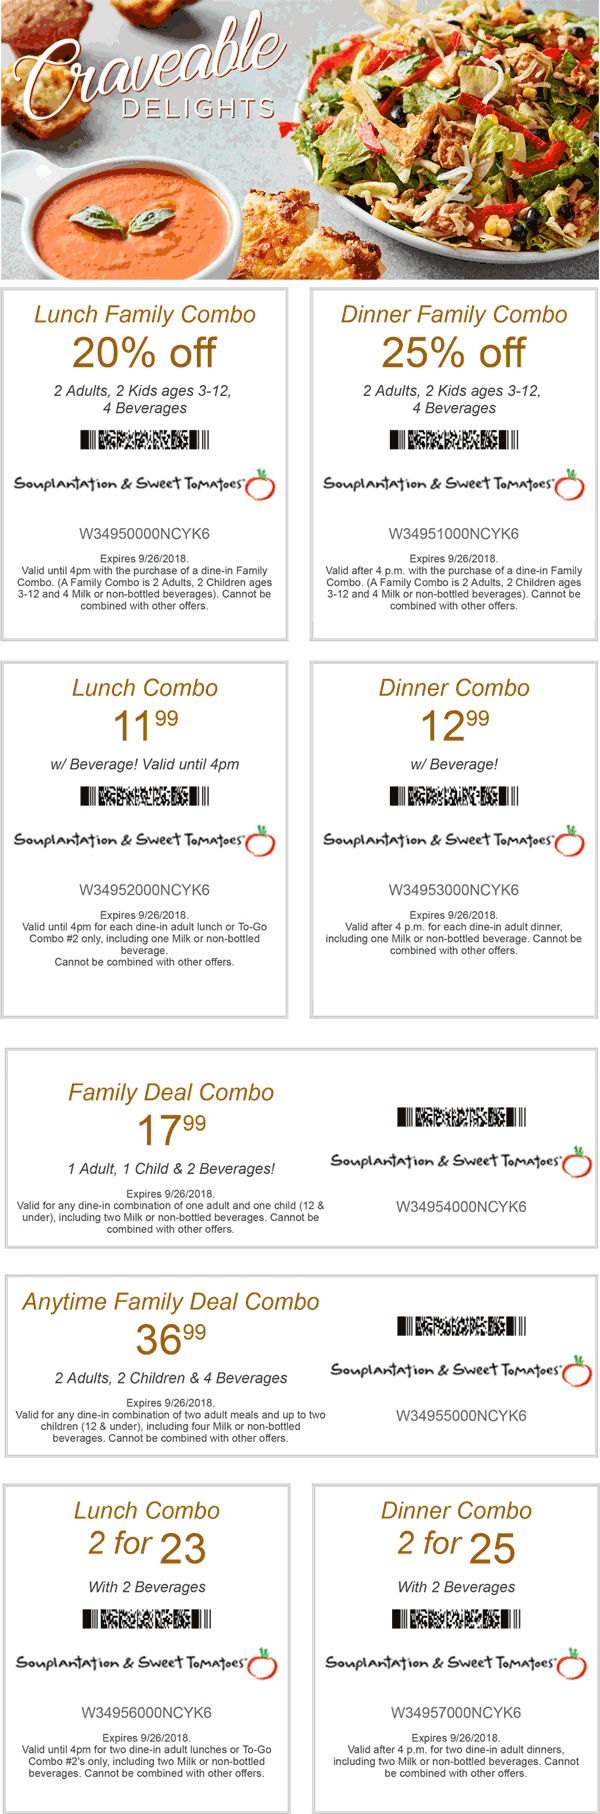 Sweet Tomatoes Coupon February 2019 25% off dinner & more at Souplantation & Sweet Tomatoes